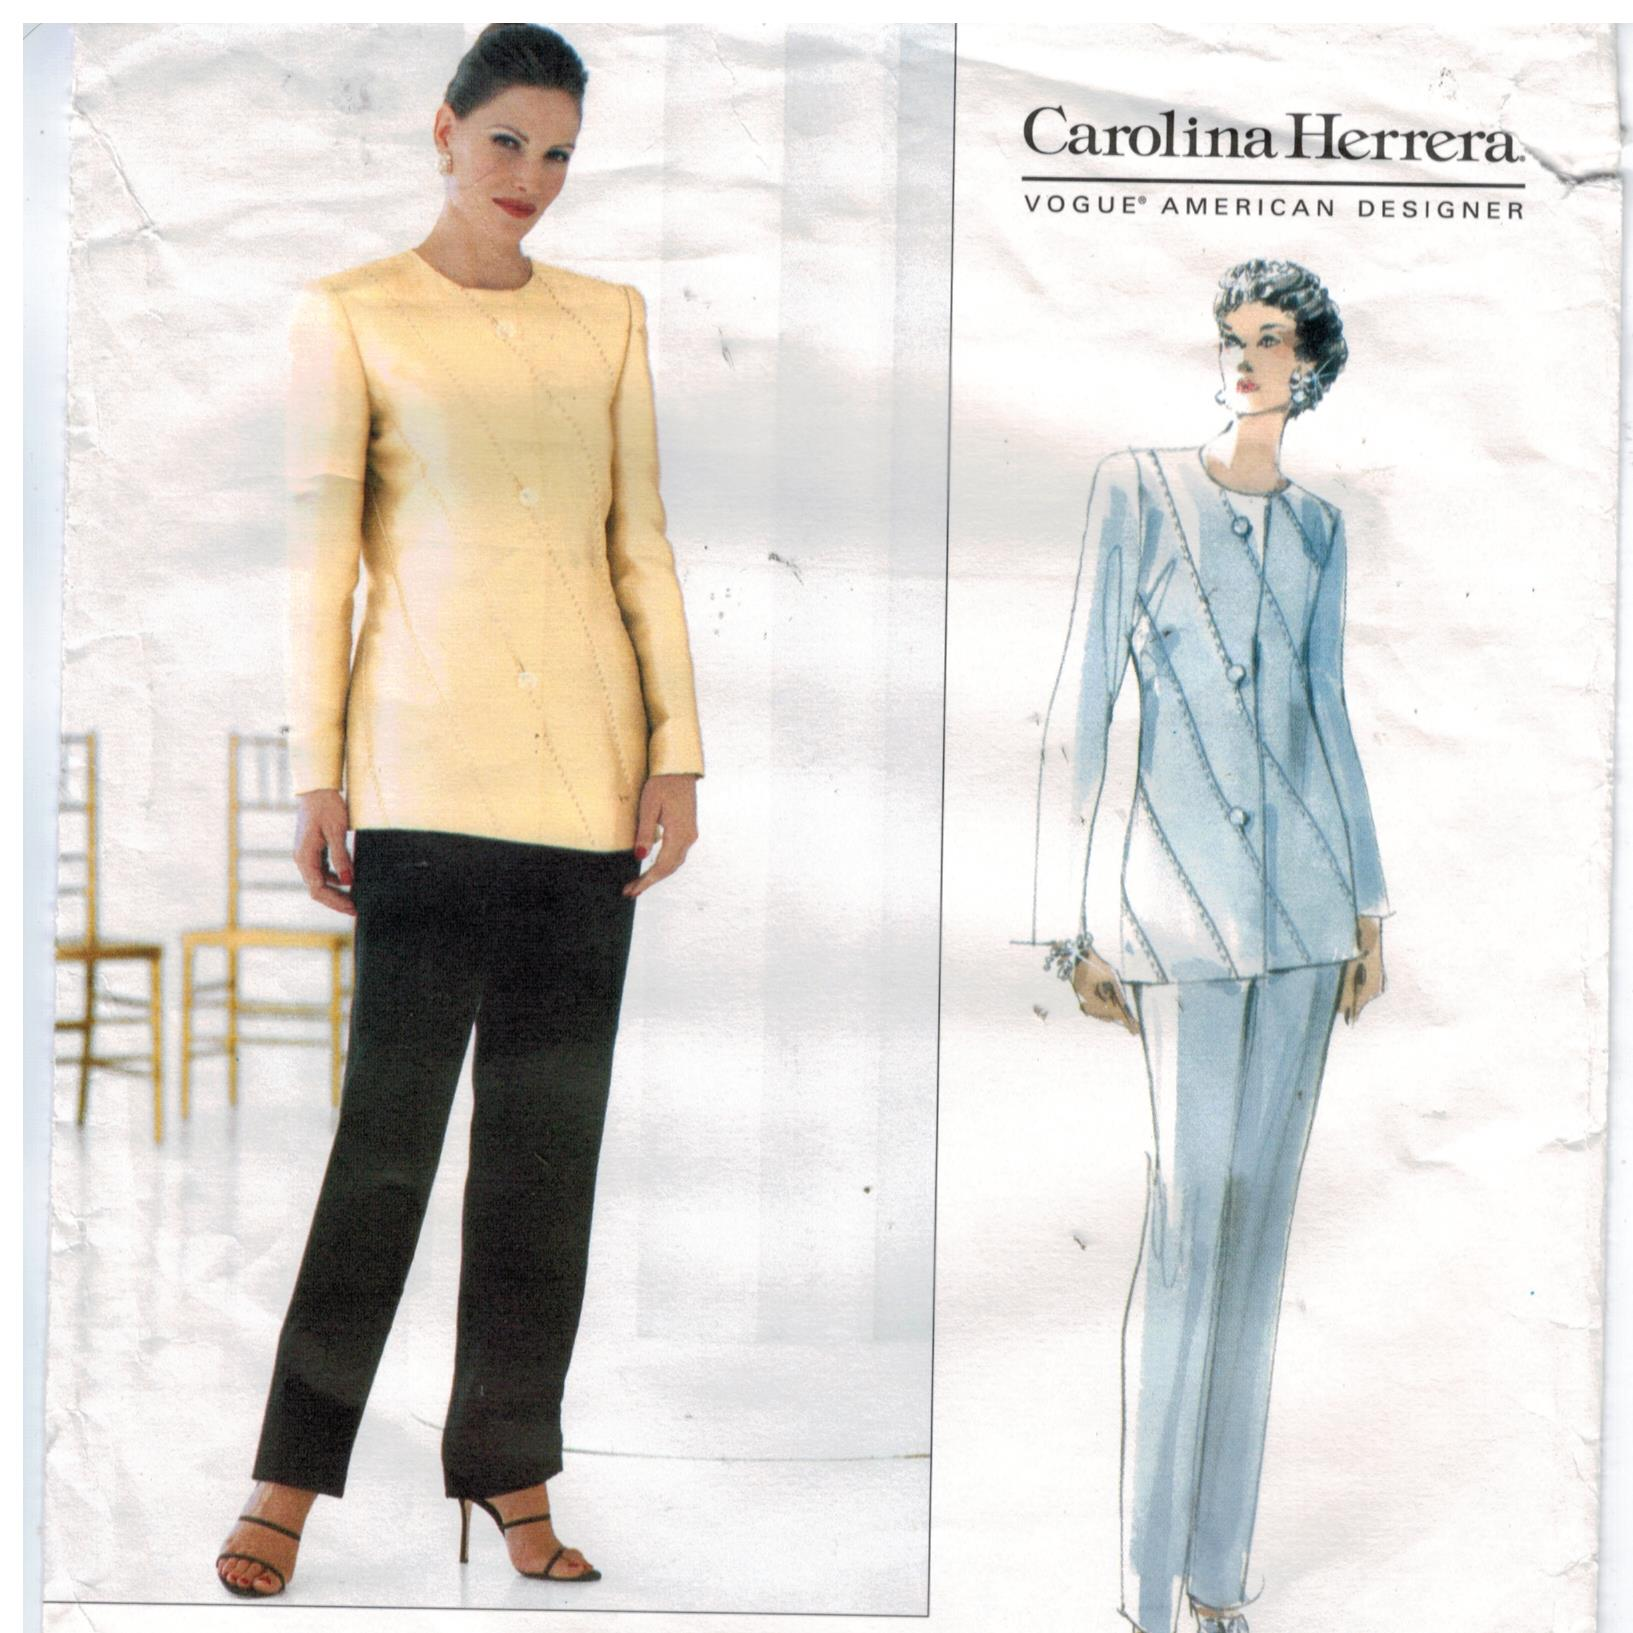 Vogue Pattern 2229 Carolina Herrera Designer Pantsuit pattern sizes 14, 16,  18